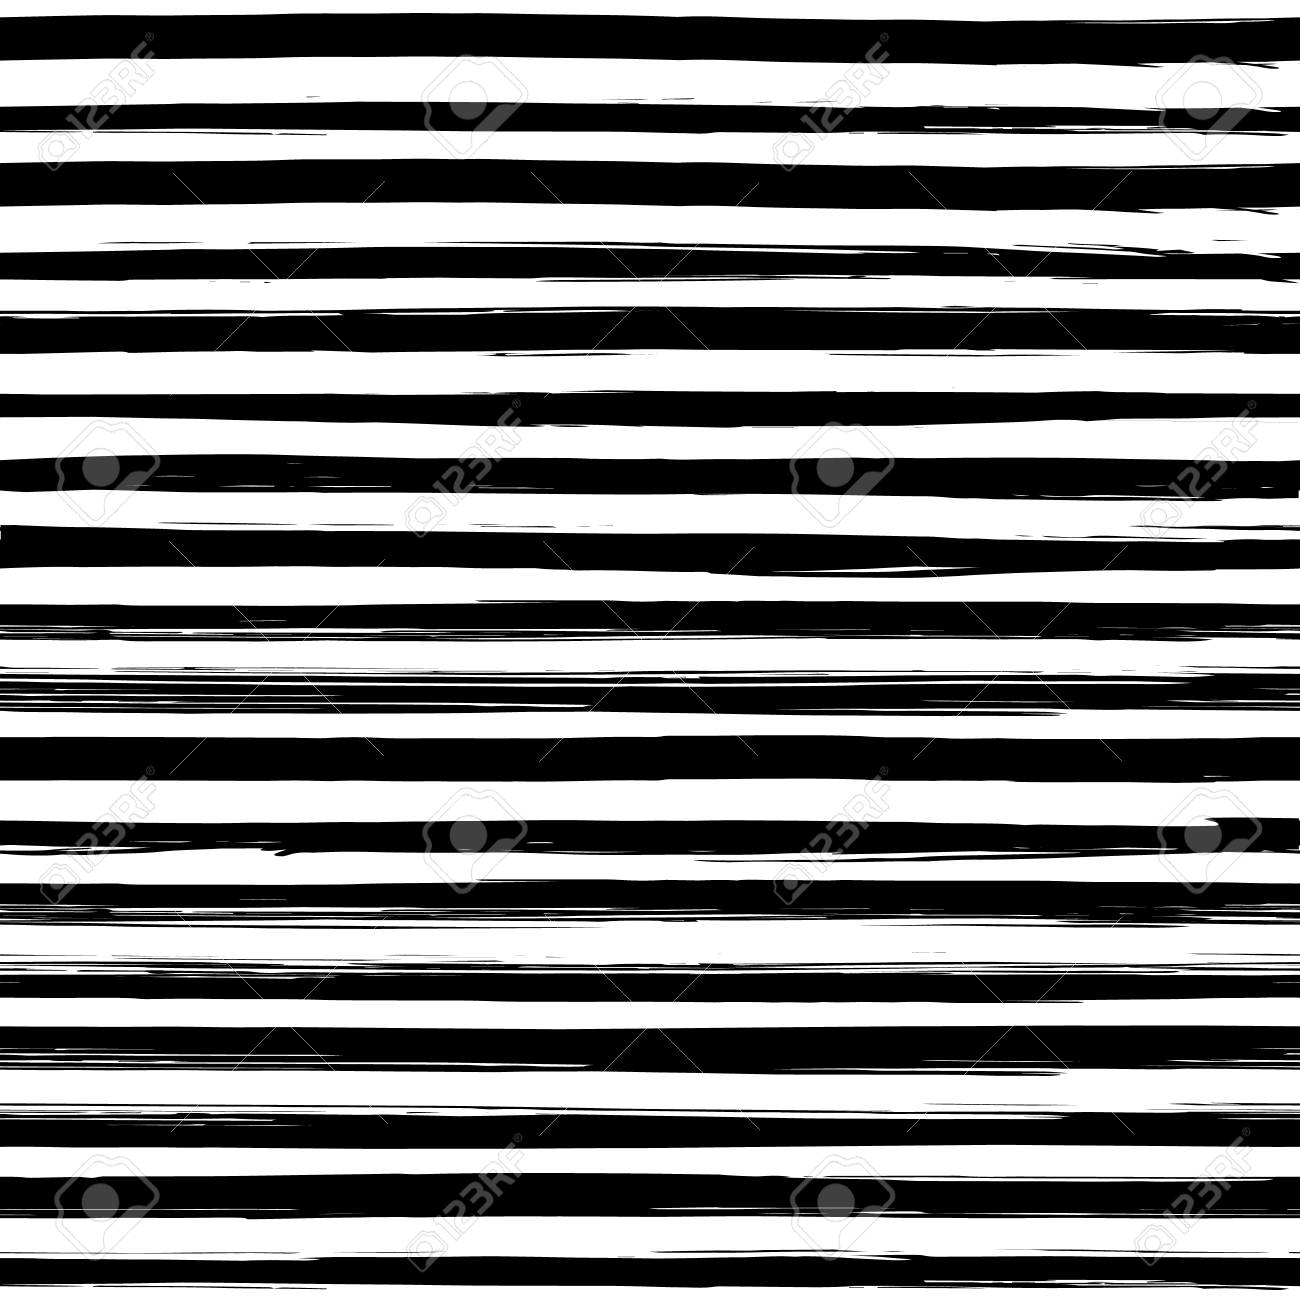 Seamless Pattern With Hand Drawn Black And White Stripes Monochrome Royalty Free Cliparts Vectors And Stock Illustration Image 74494720